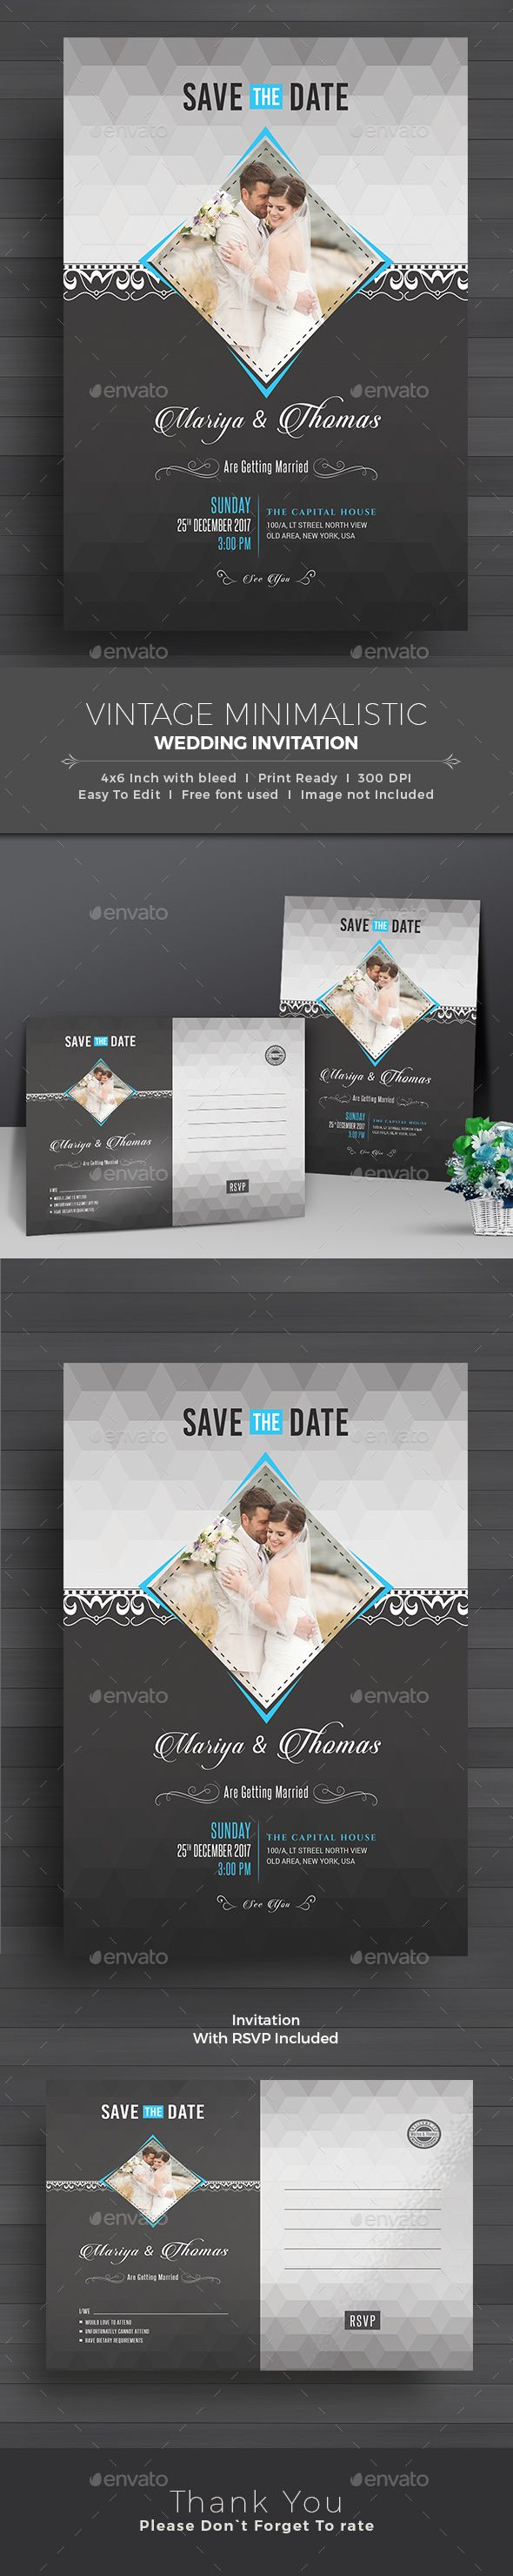 Wedding Invitation by themedevisers Elegant Wedding Invitation Card Template This Elegant Wedding Invitation Card design is suitable for both traditional and modern